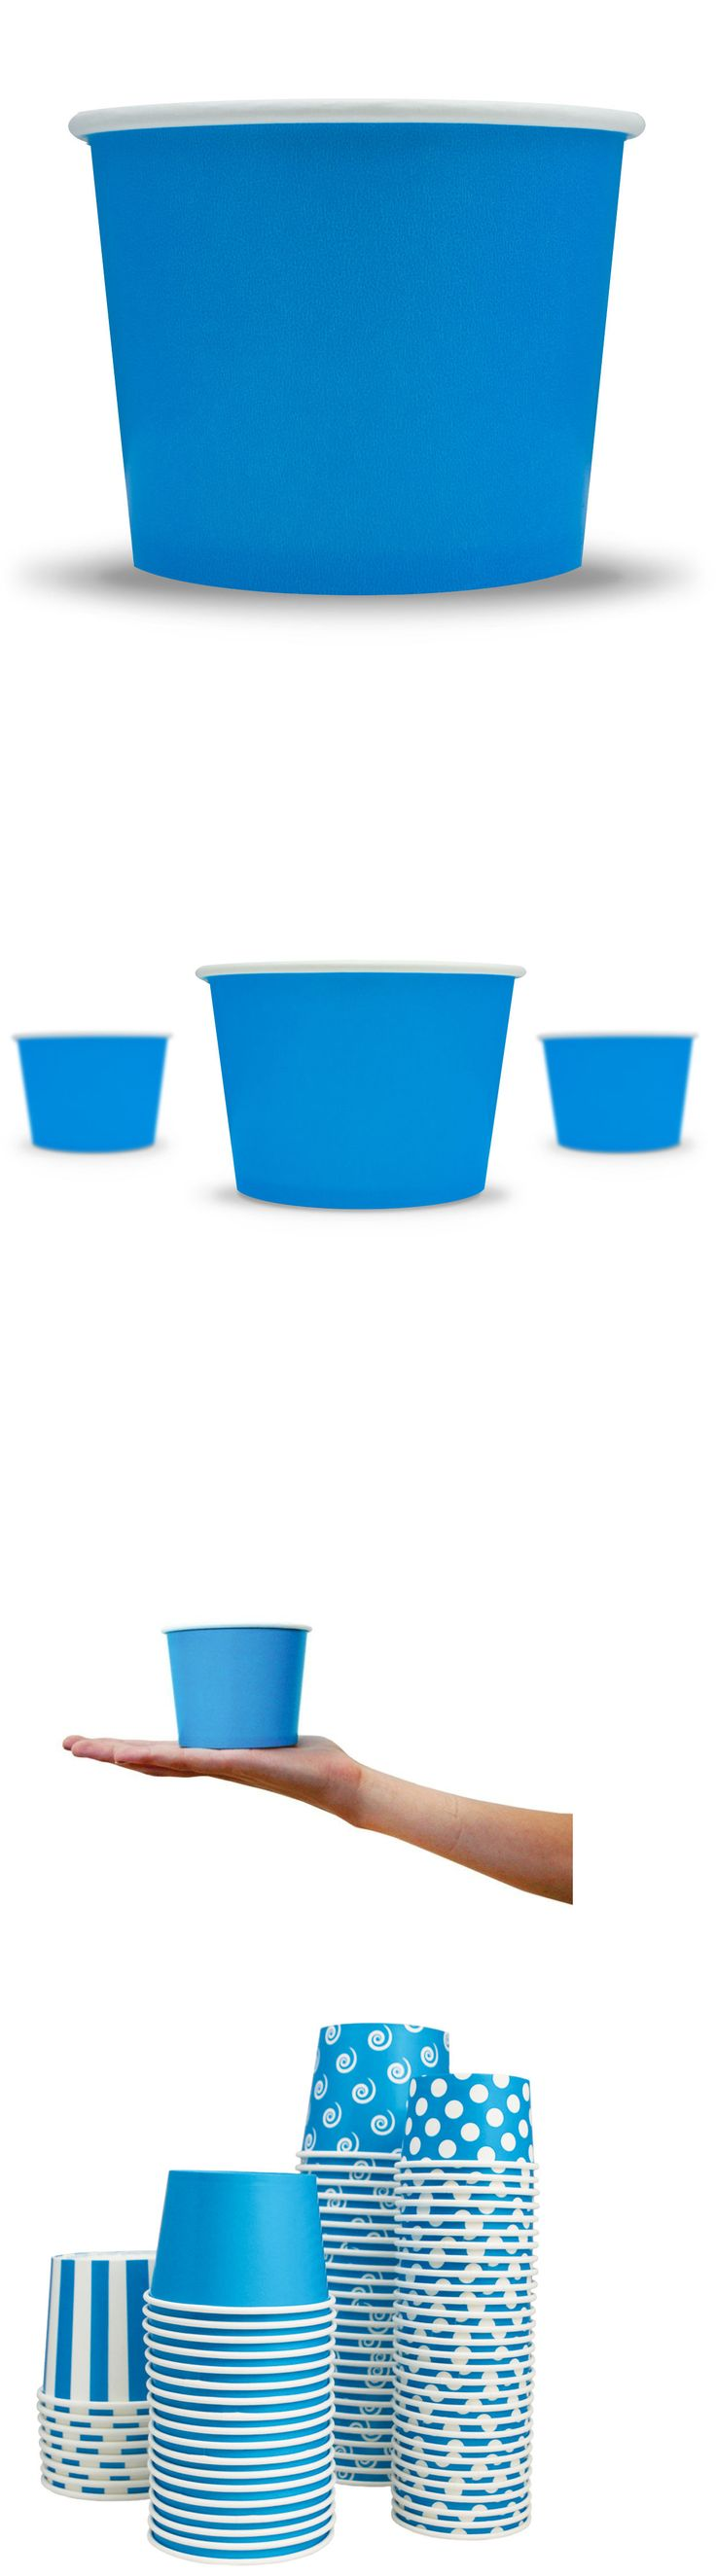 Serving Utensils and Sets 137750: Frozen Dessert Supplies Blue Paper Ice Cream Cups -> BUY IT NOW ONLY: $64.4 on eBay!